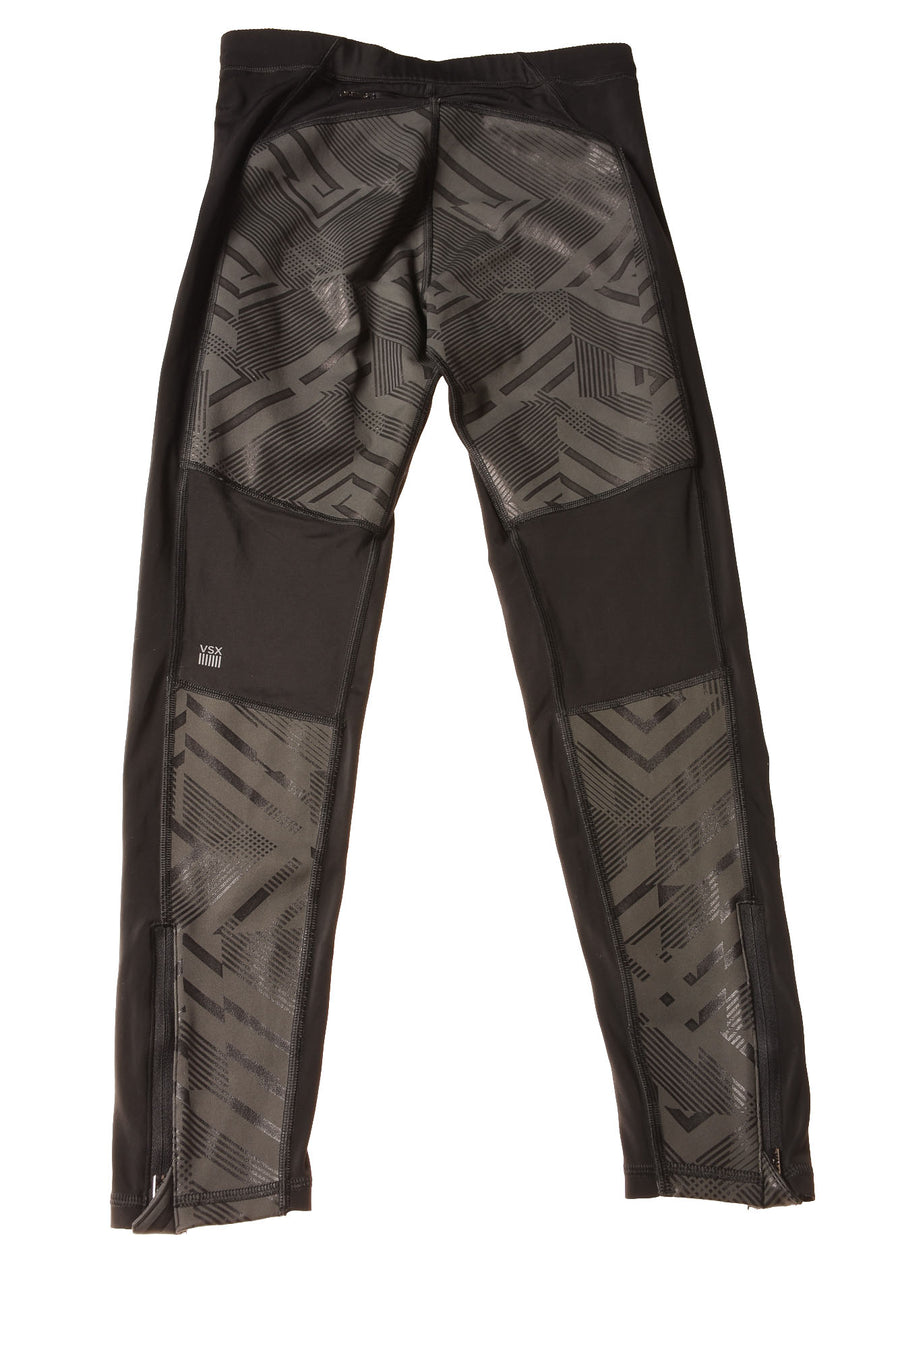 Women's Pants By Victoria's Secret Sport